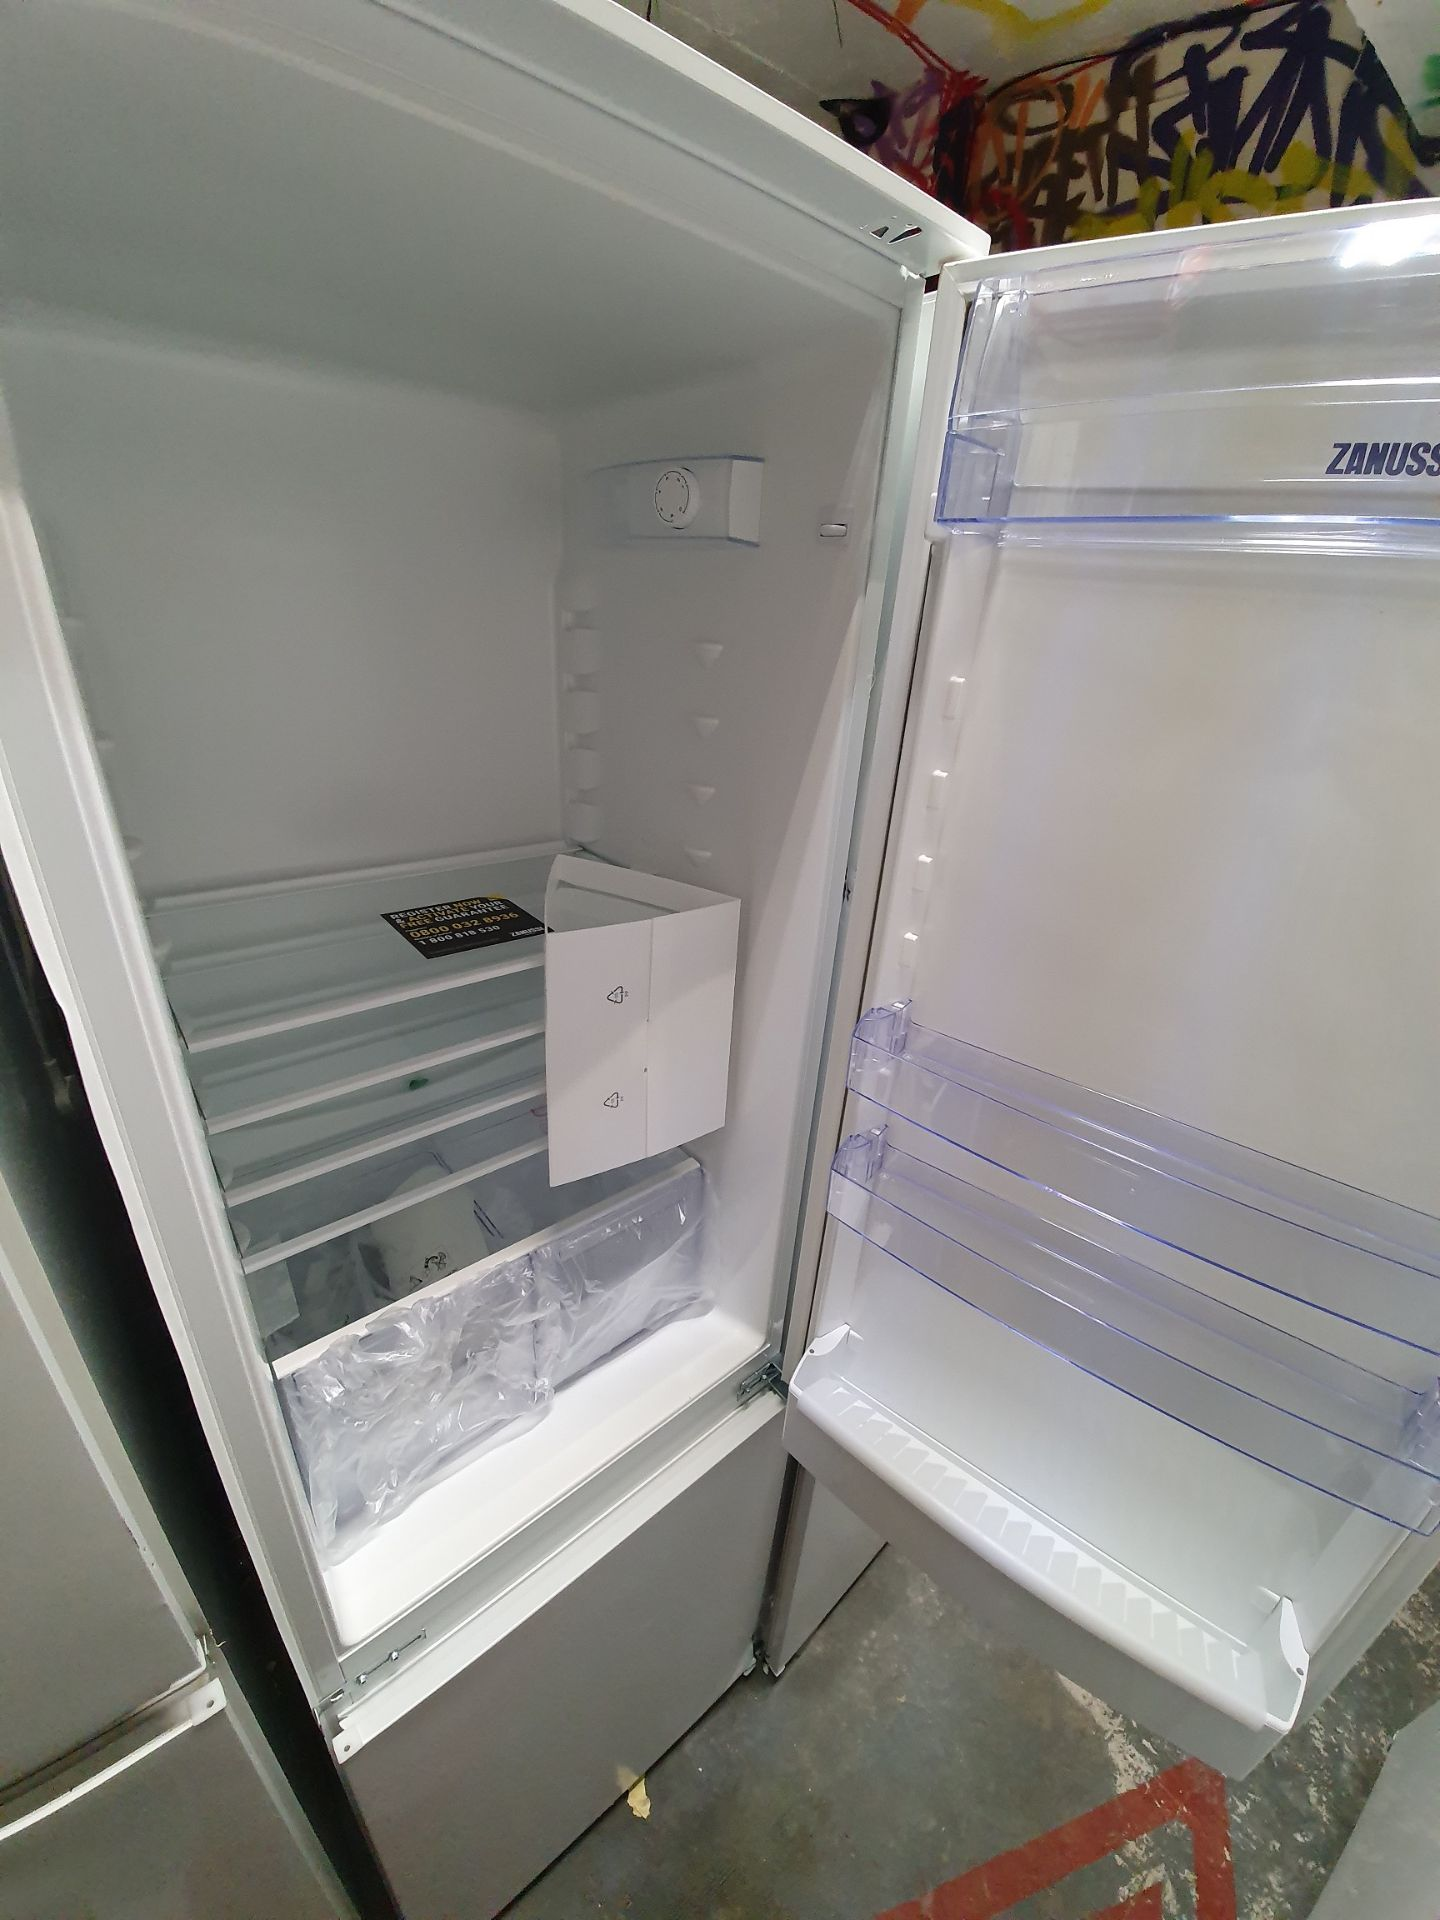 NEW/GRADED AND UNPACKAGED Prima PRRF500 50/50 * Frost Free * Integrated Fridge Freezer (Brand new - Image 9 of 14